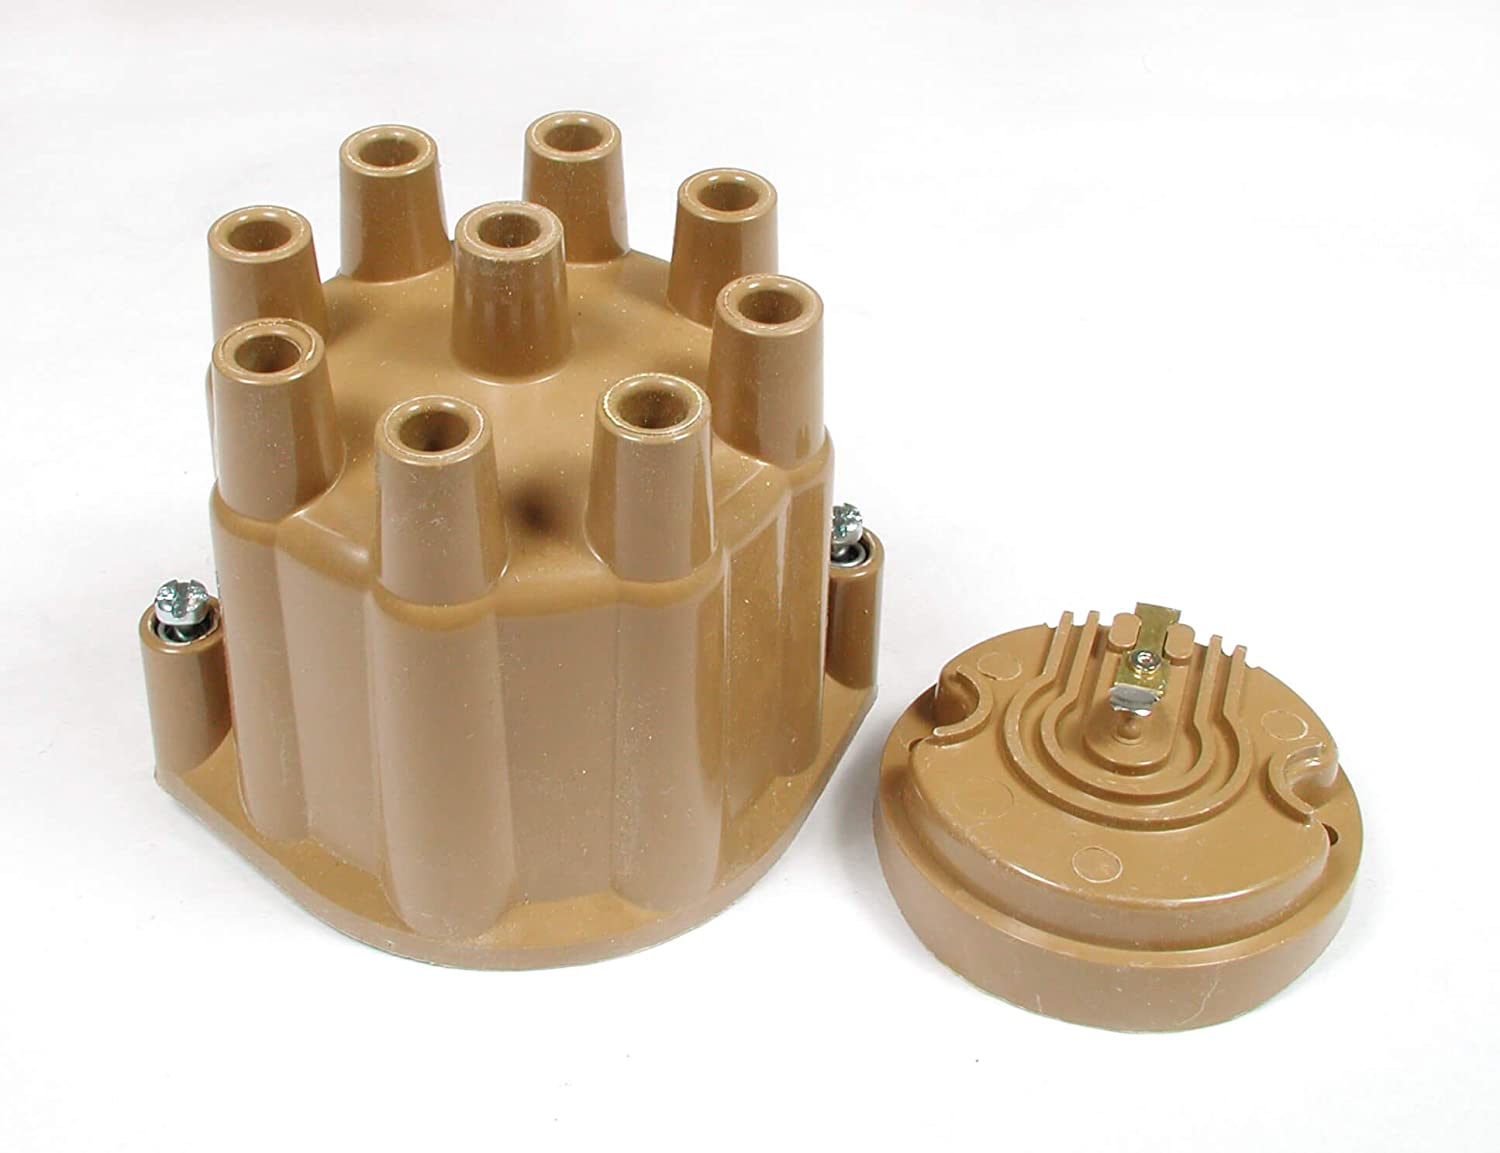 ACCEL 8120ACC Distributor Cap Rotor SALENEW very popular Socket Be super welcome Kit - Style Female